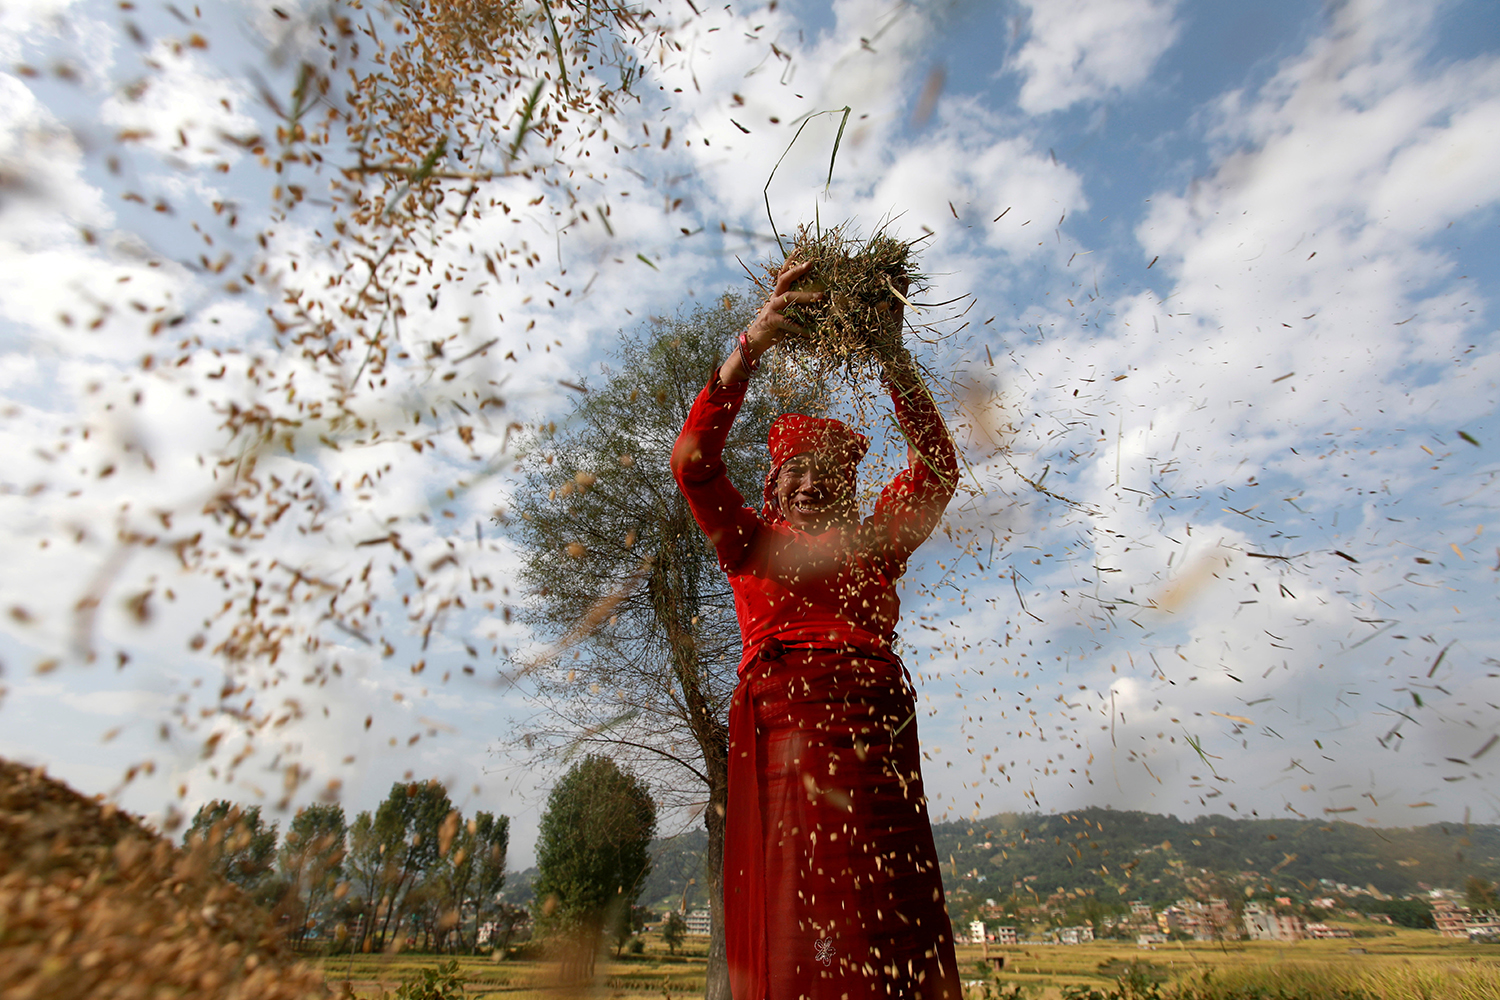 A farmer harvests rice at a field in Bhaktapur, Nepal, on World Food Day, Oct. 16. Navesh Chitrakar/REUTERS